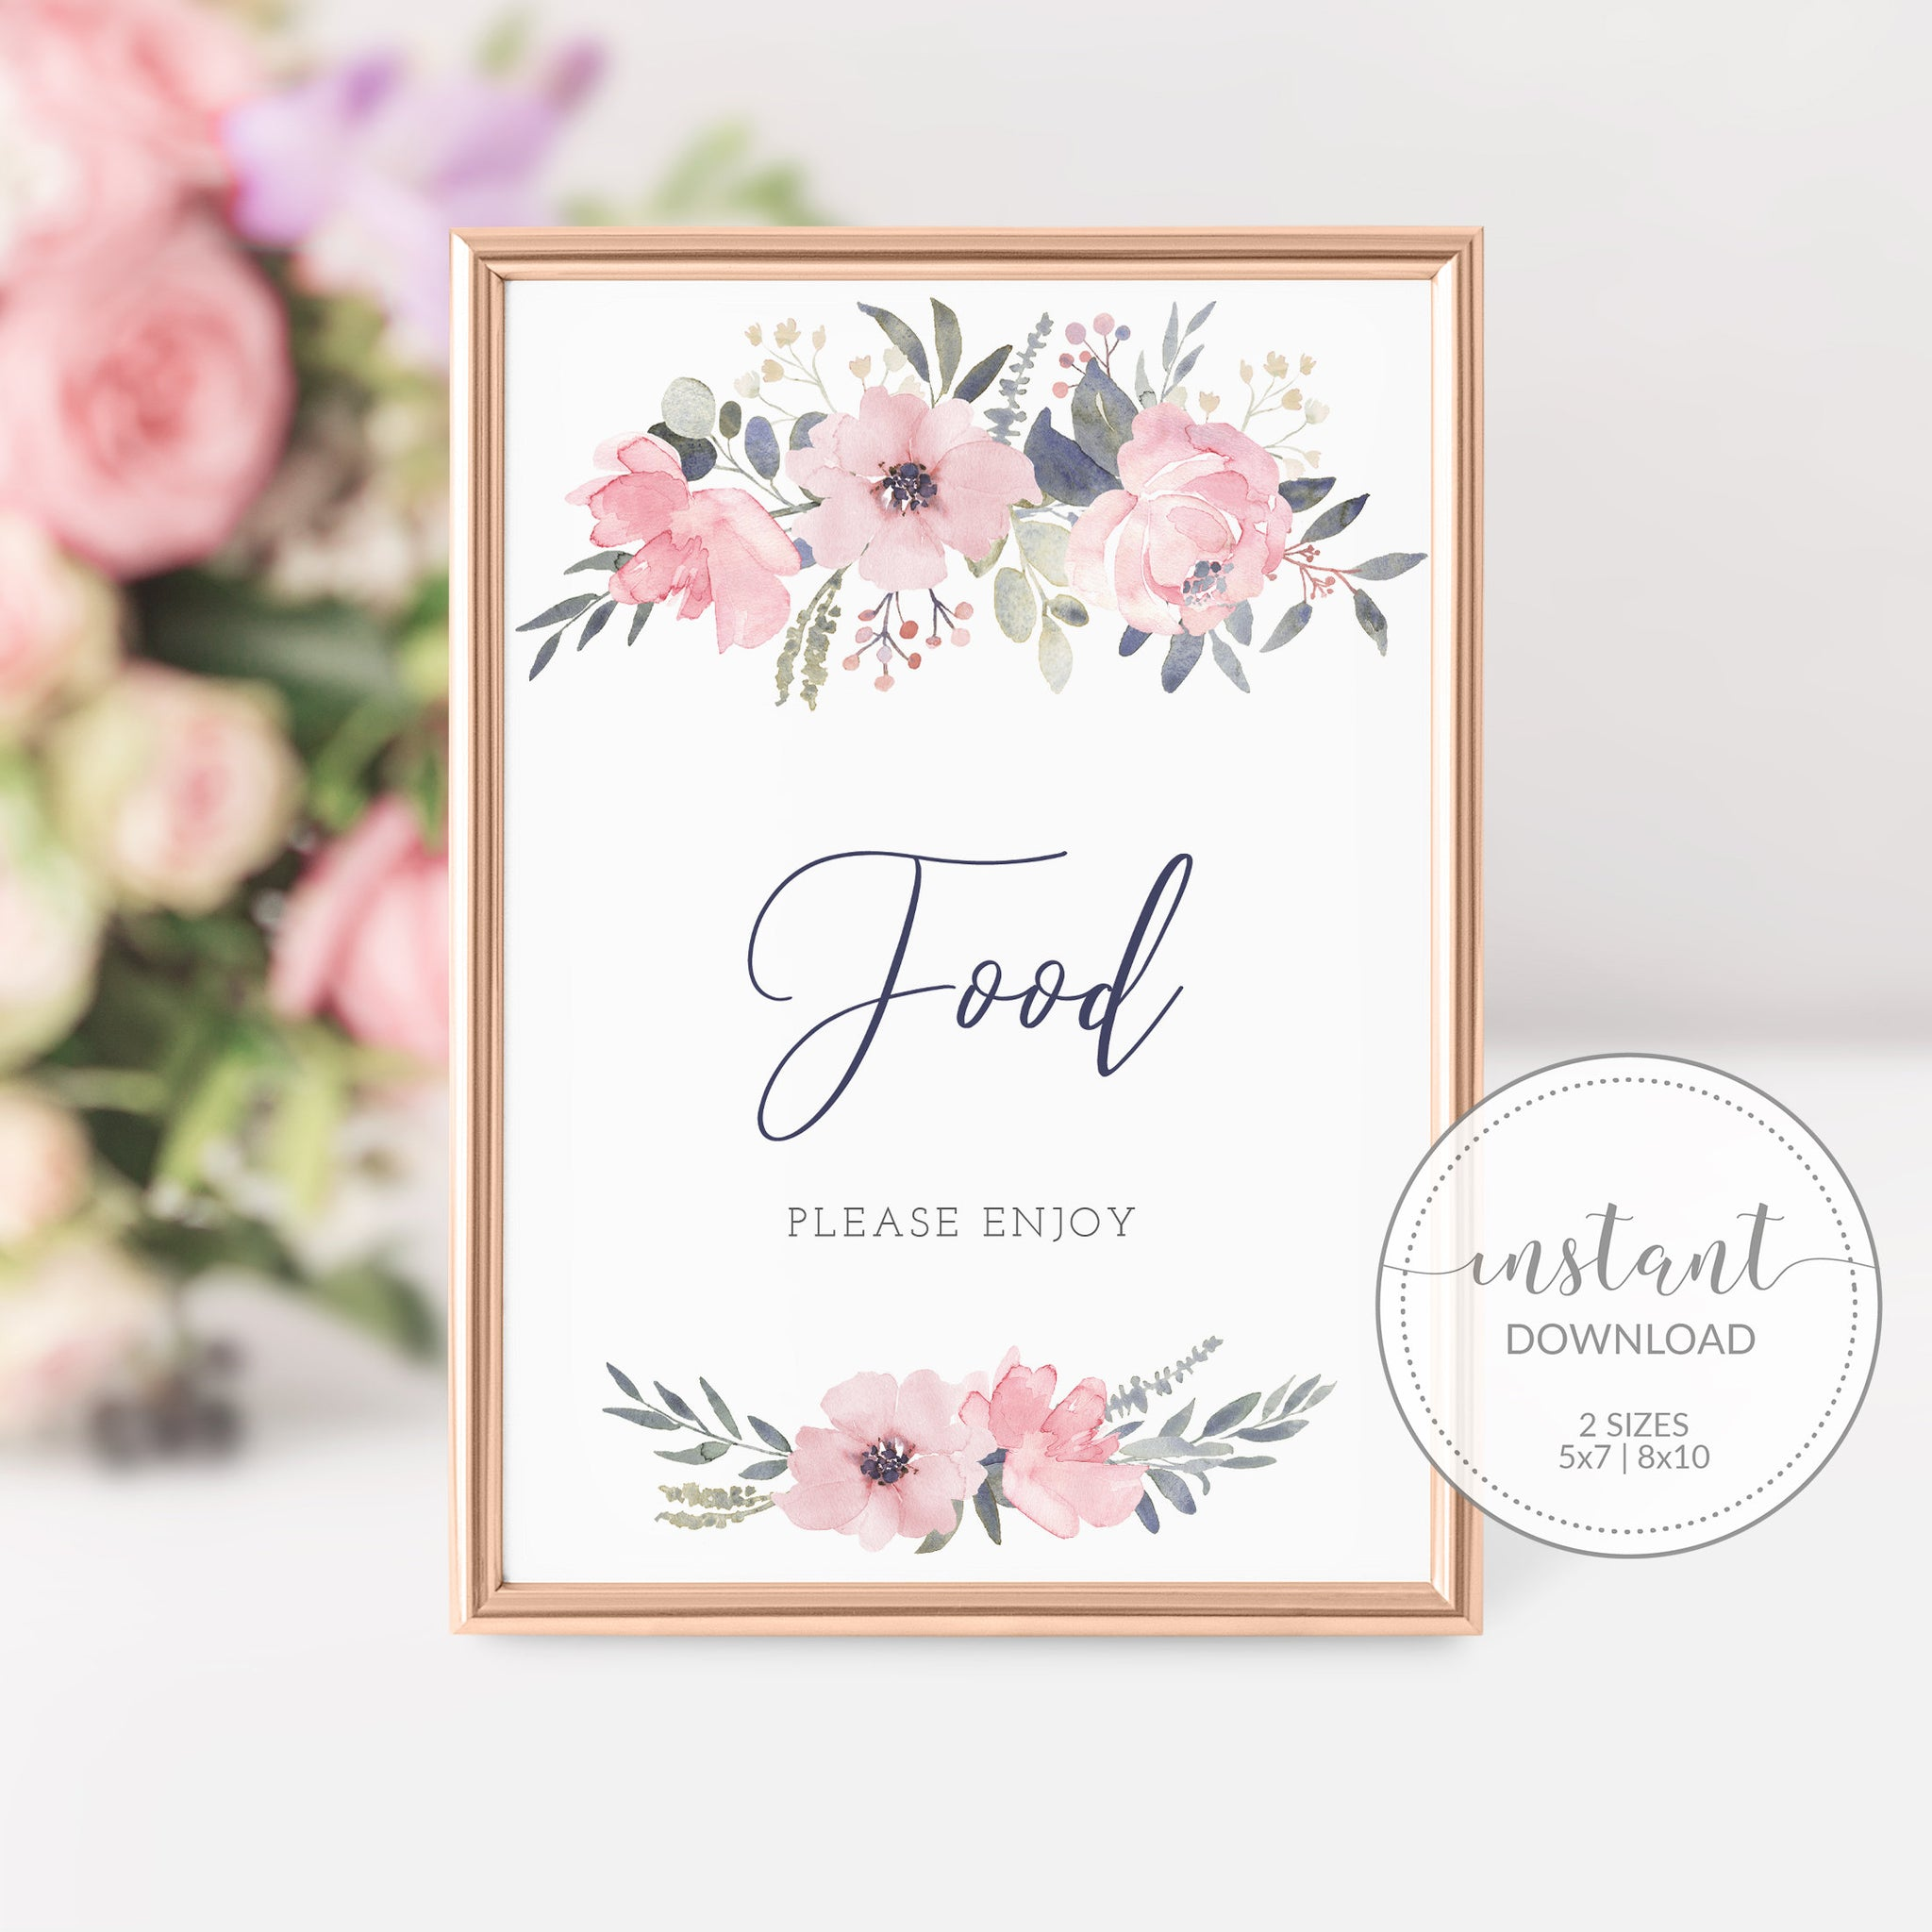 Navy and Blush Floral Printable Food Sign INSTANT DOWNLOAD, Birthday, Bridal Shower, Baby Shower, Wedding Decorations and Supplies - NB100